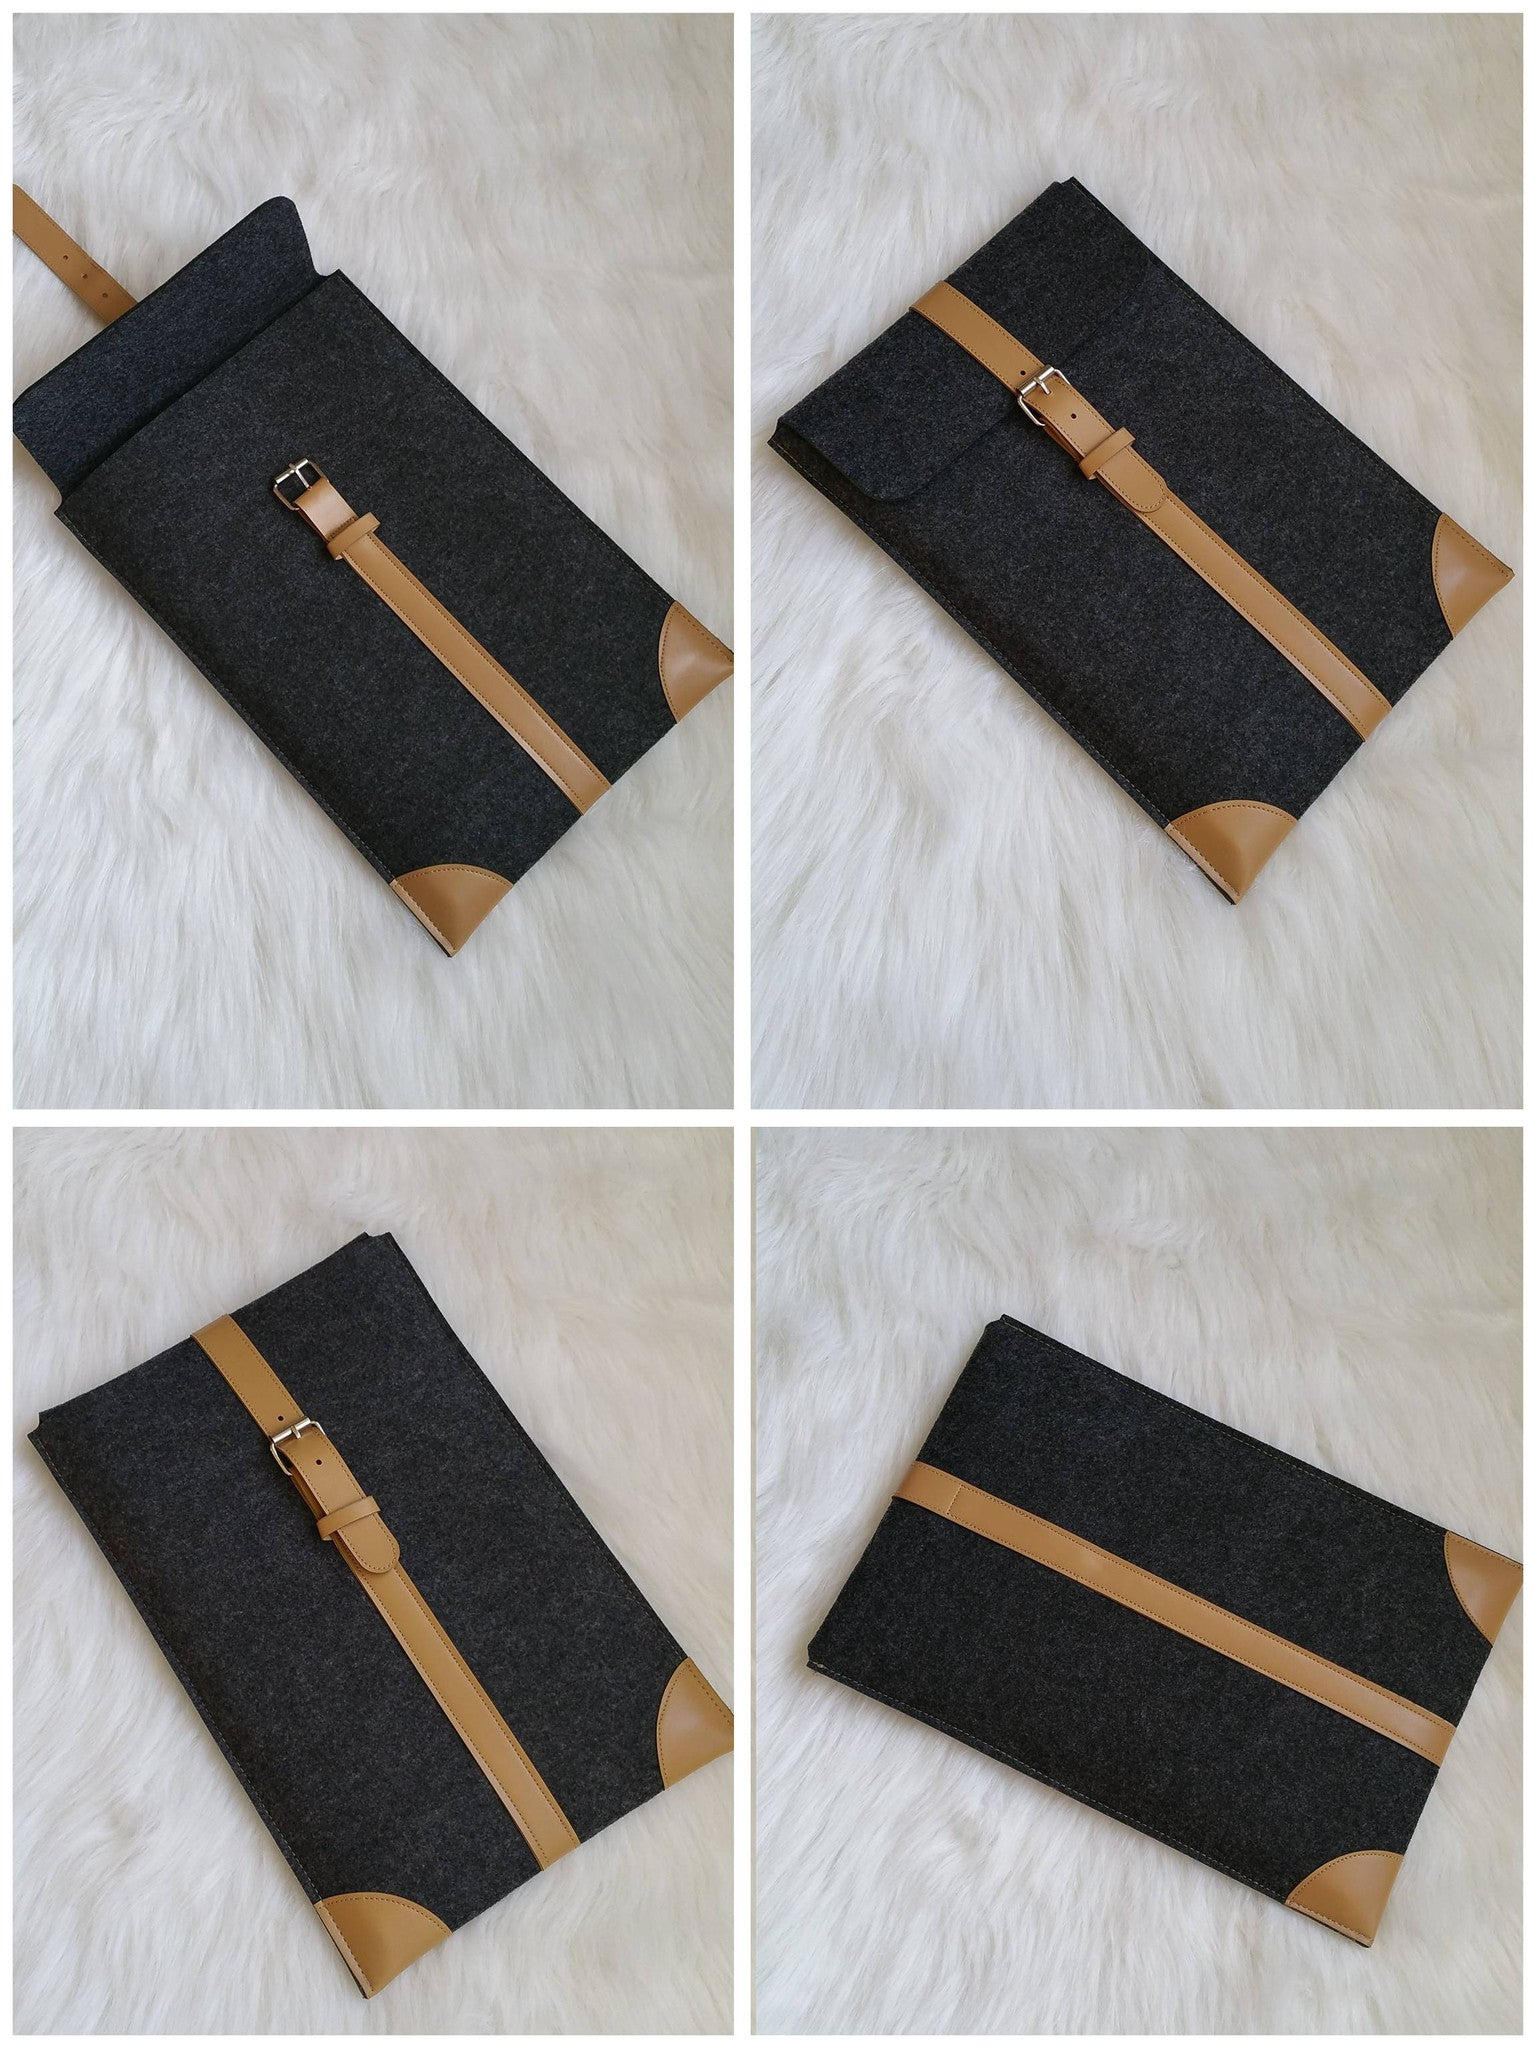 Notebook Cases, Laptop Cases, Computer Cases, Folio Cases, Documents Holder - Bedao Boutique